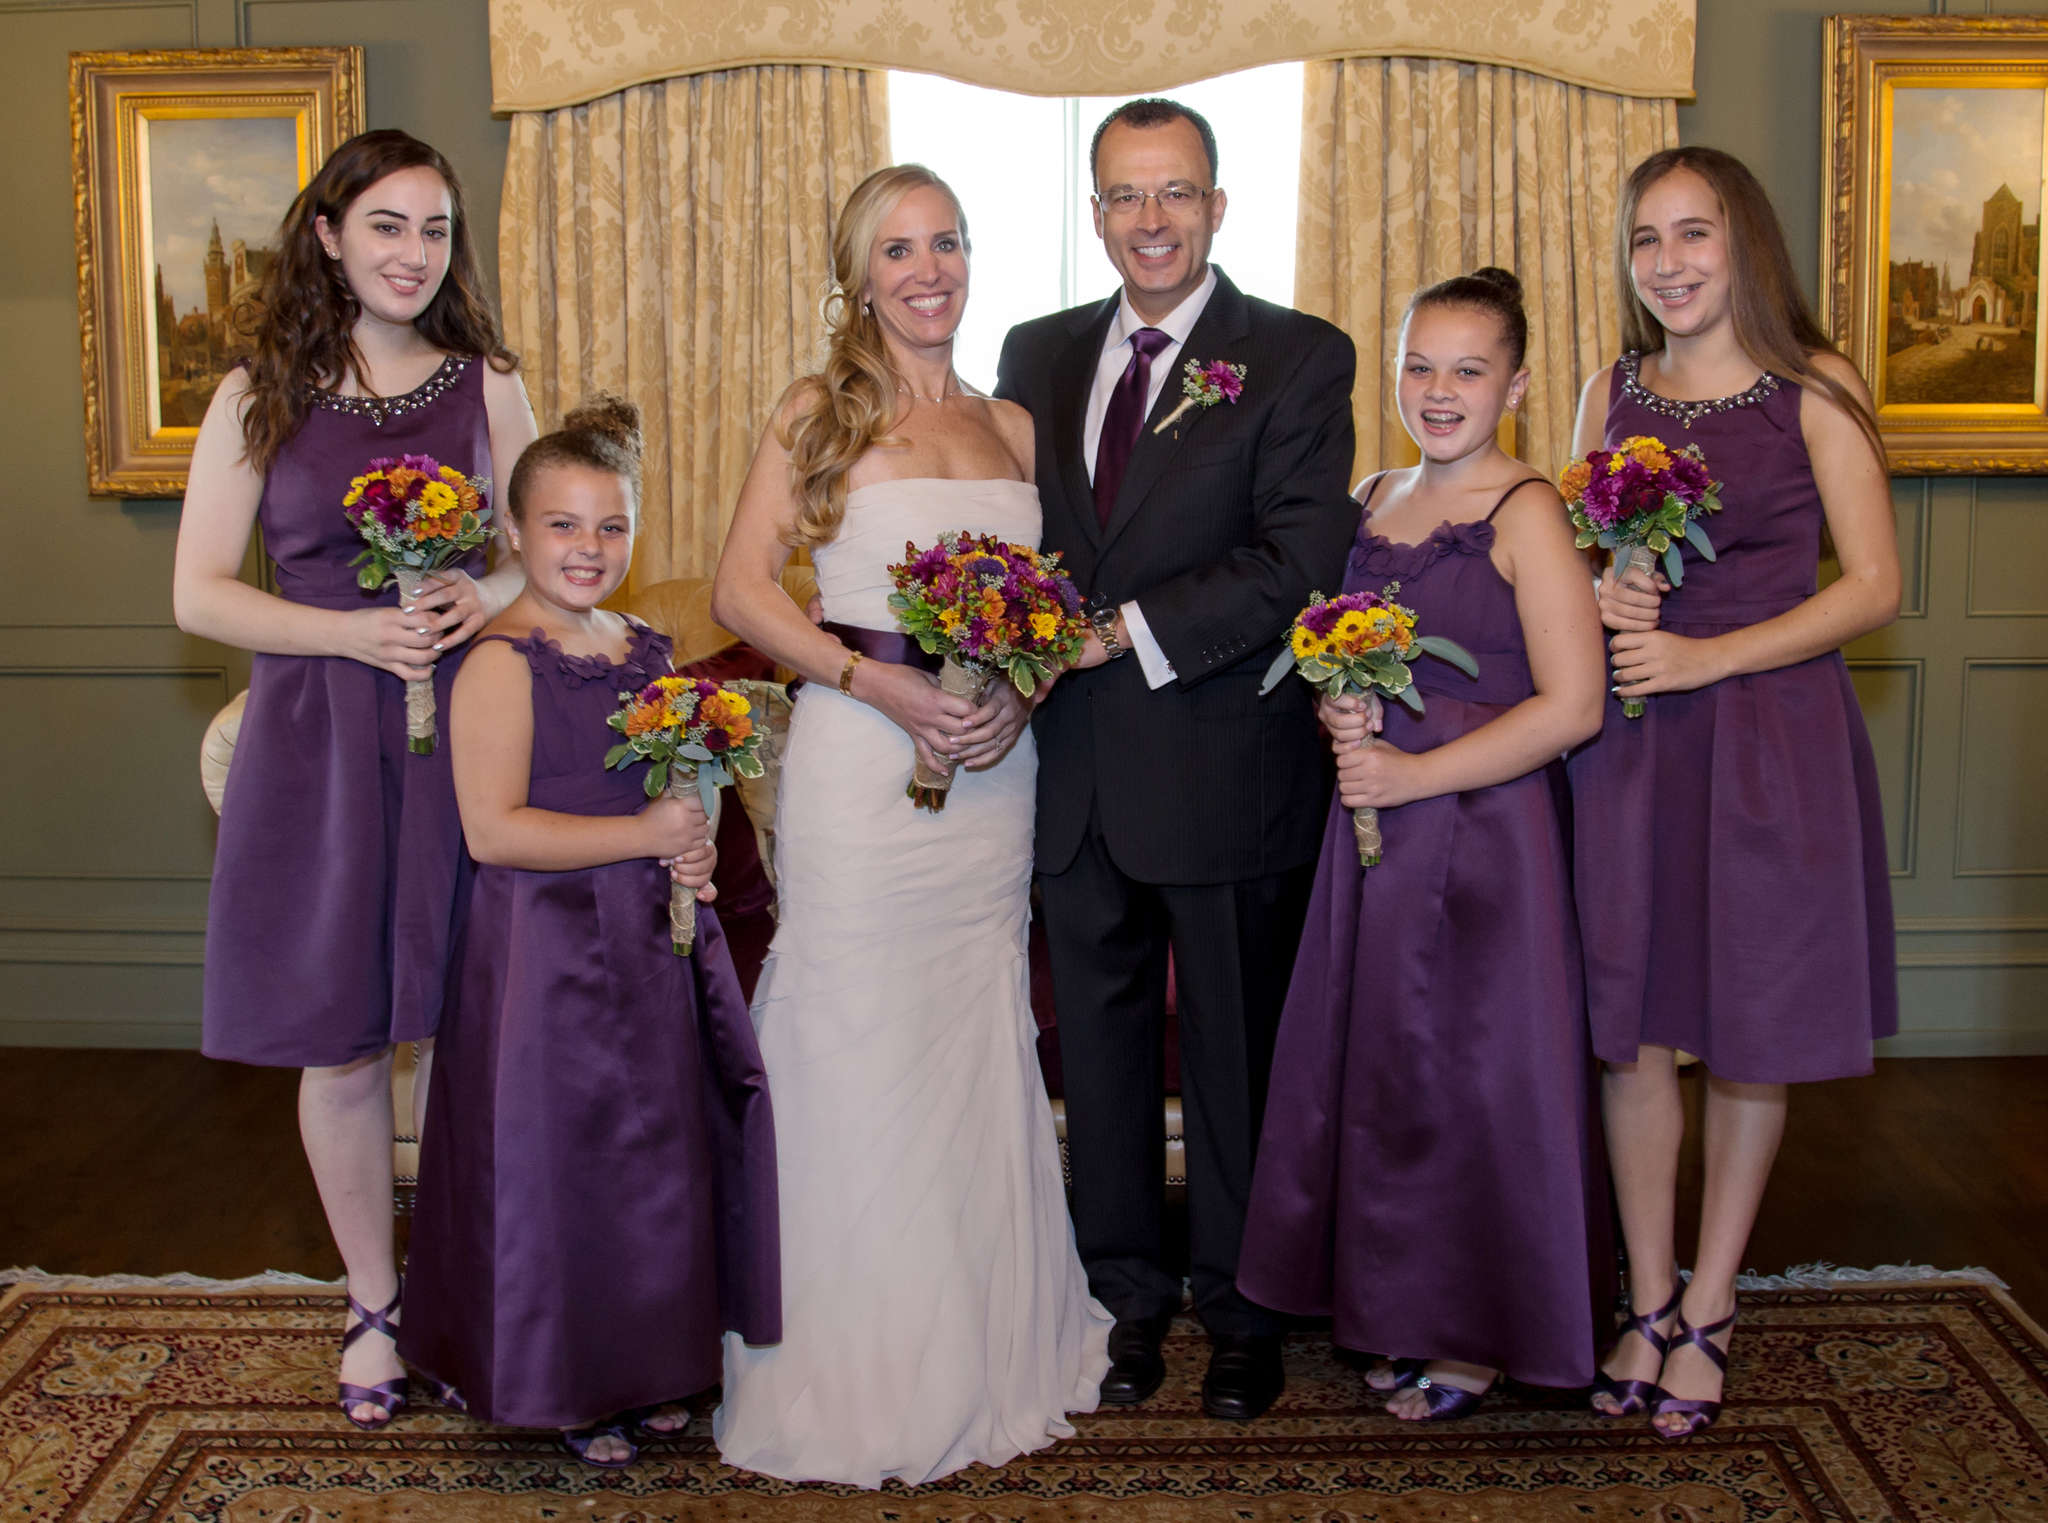 Together as a new family, newlyweds Jaimi Gordon and Ron Blackburn with (from left) Jaimi´s daughter Alexandra, Ron´s daughter Allison, Ron´s daughter Elisabeth, and Jaimi´s daughter Isabelle.